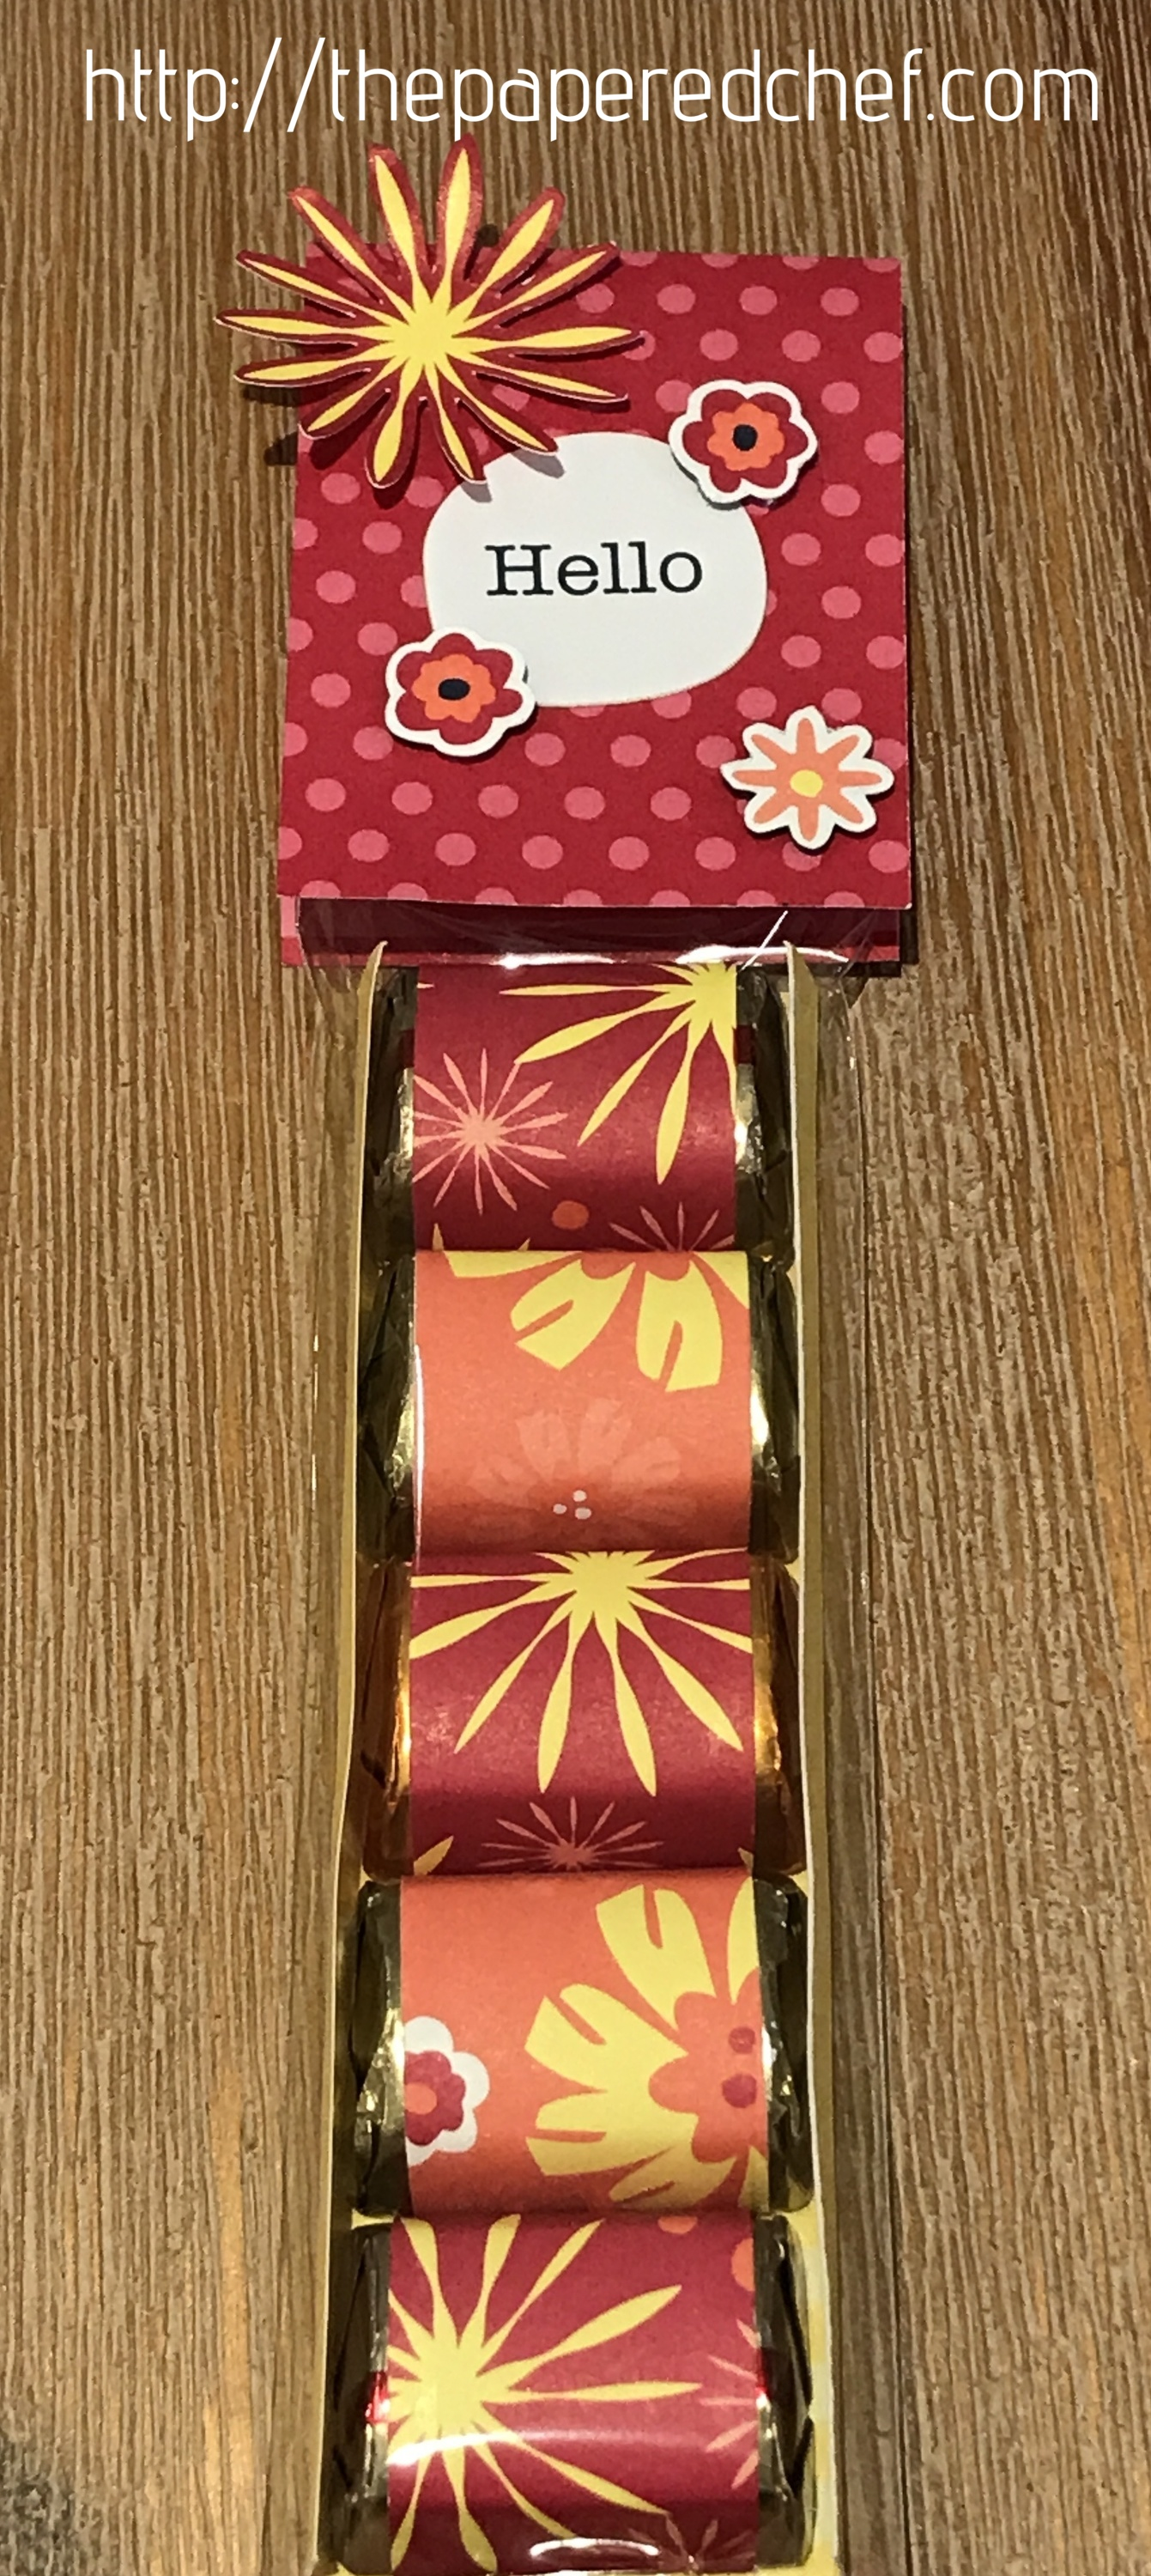 Happiness Blooms - Hershey Nugget Treat